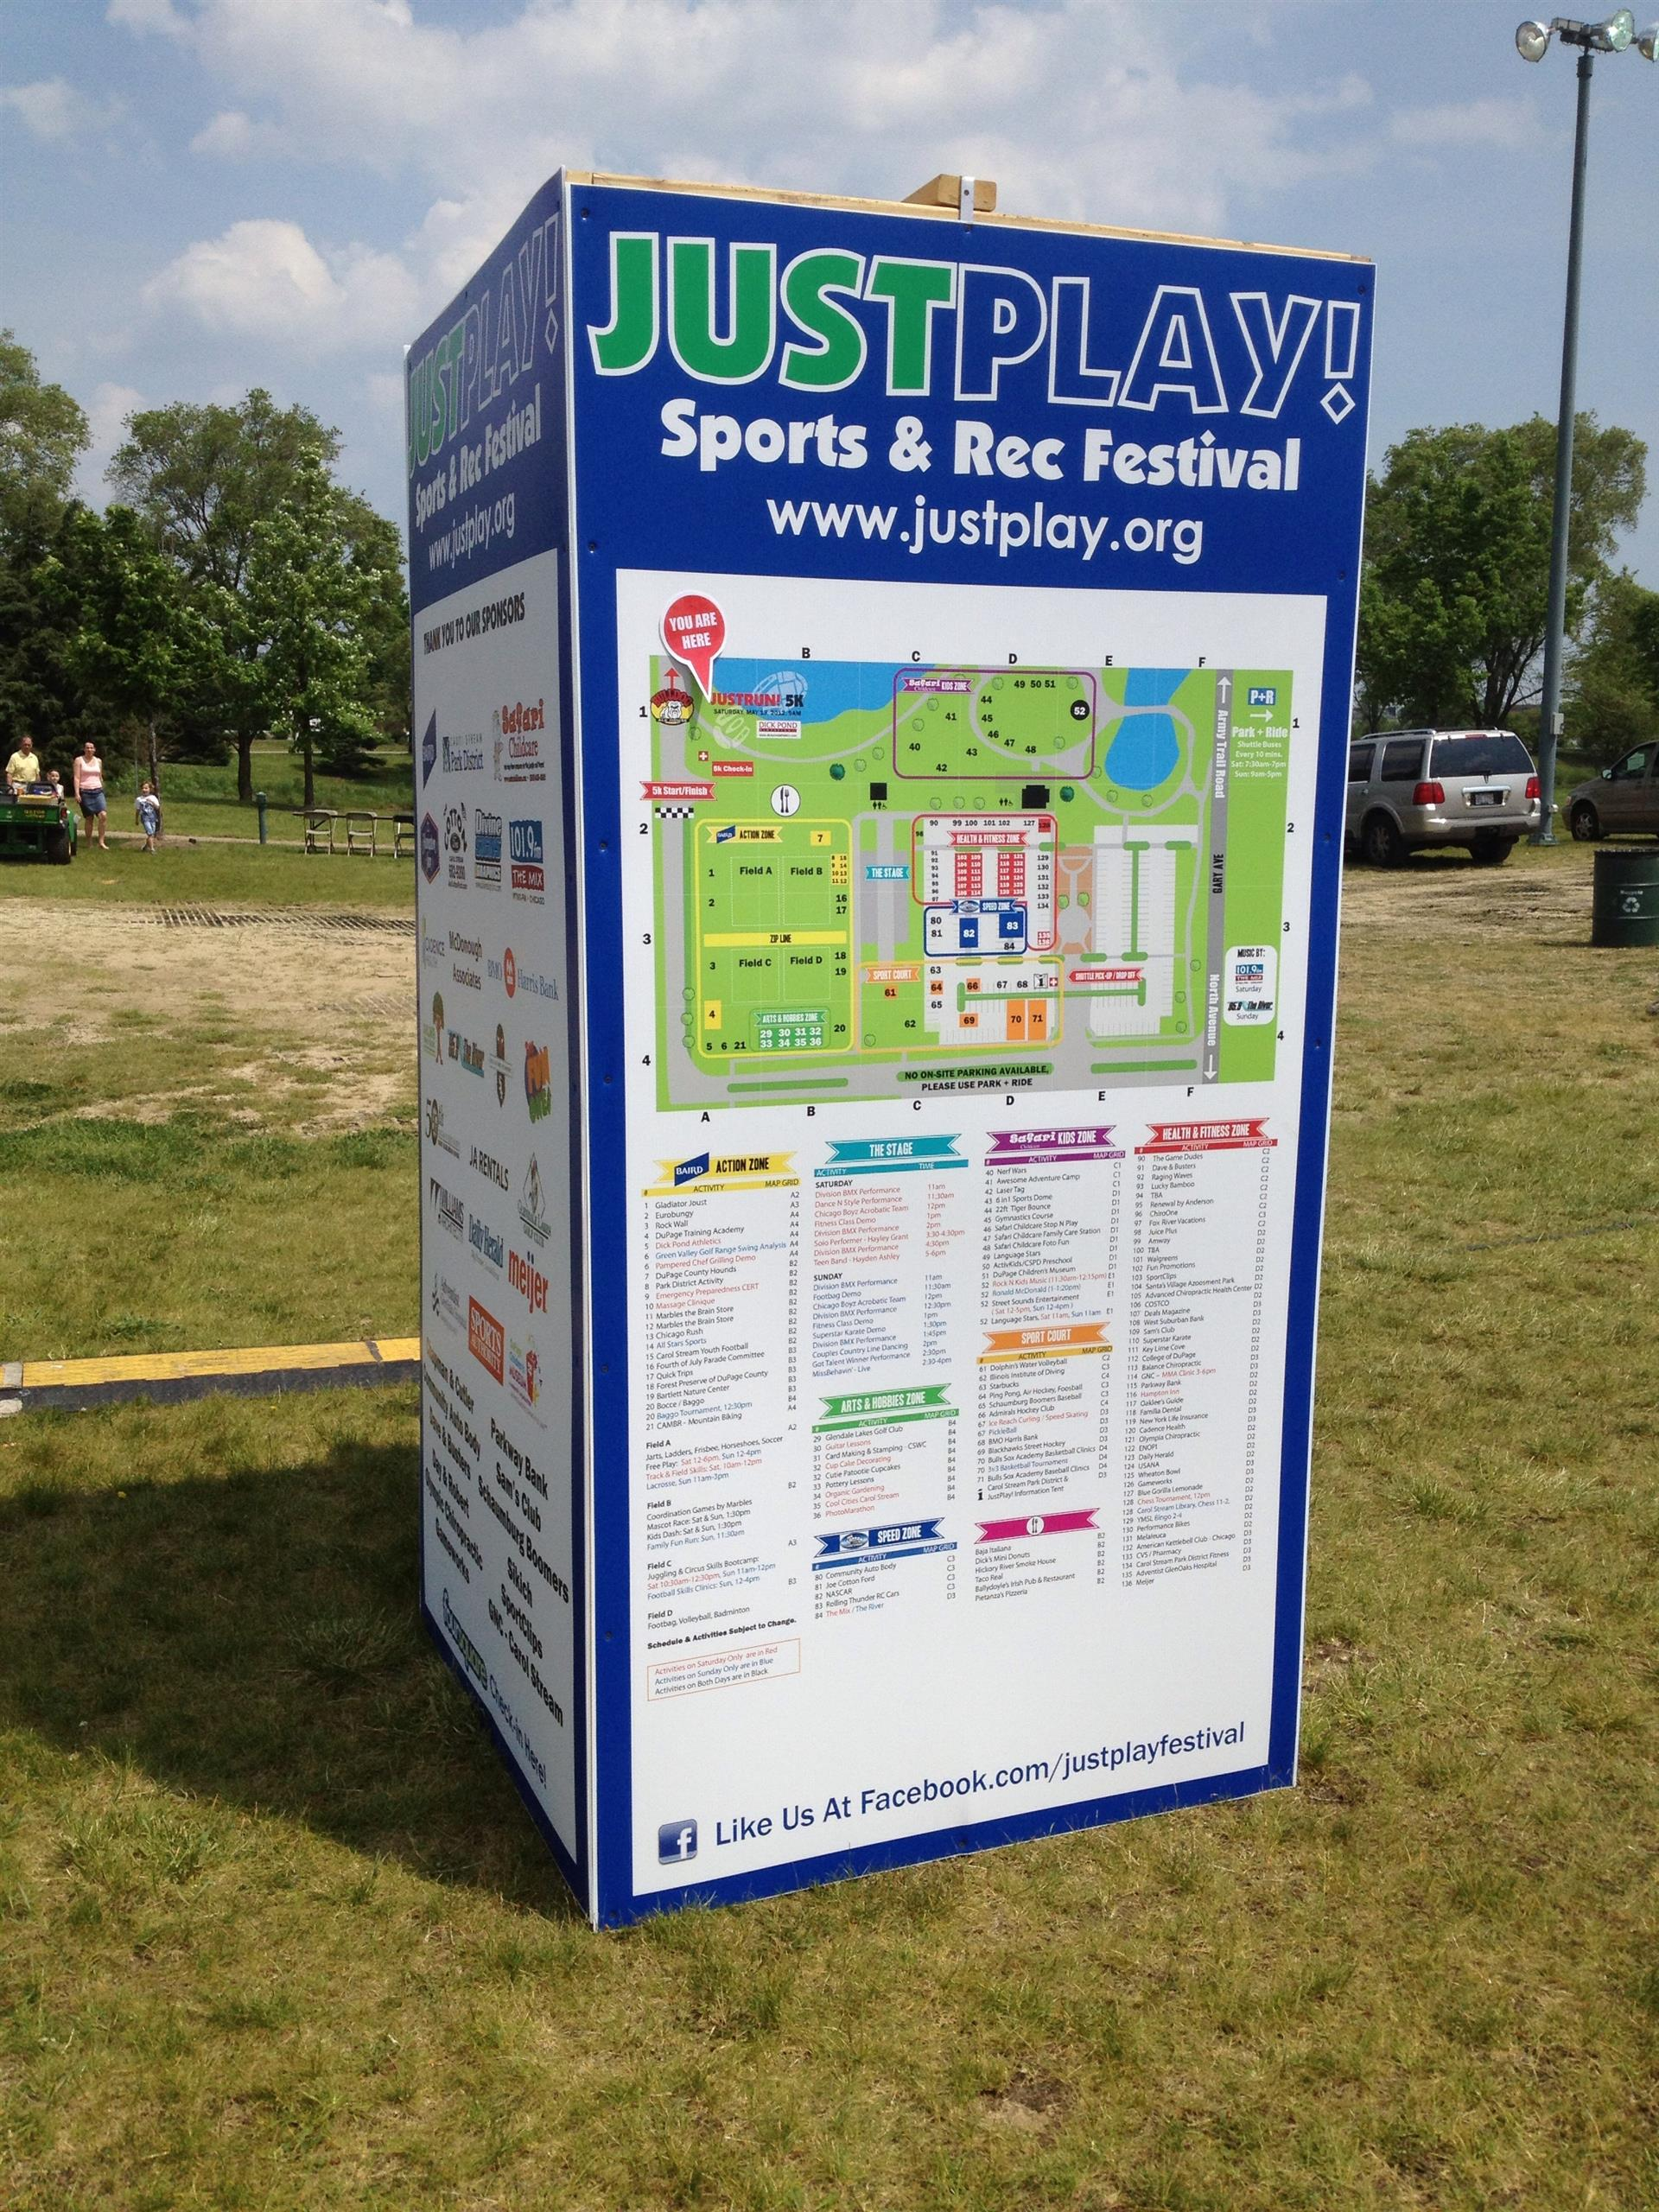 Just Play Spore & Rec Special Event Signage